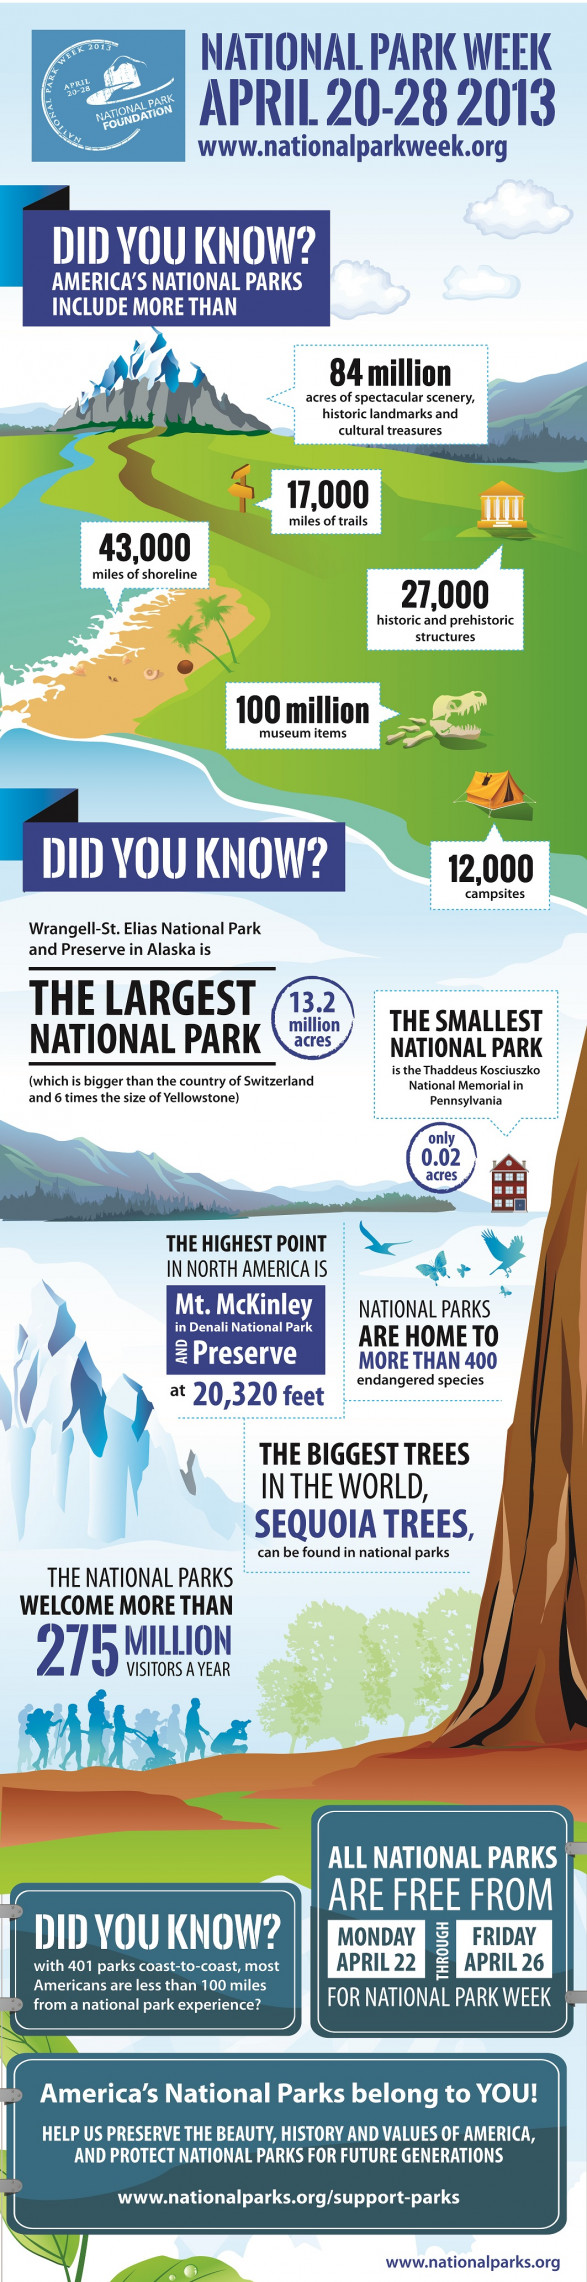 Did You Know National Park Week Is April 20-28?